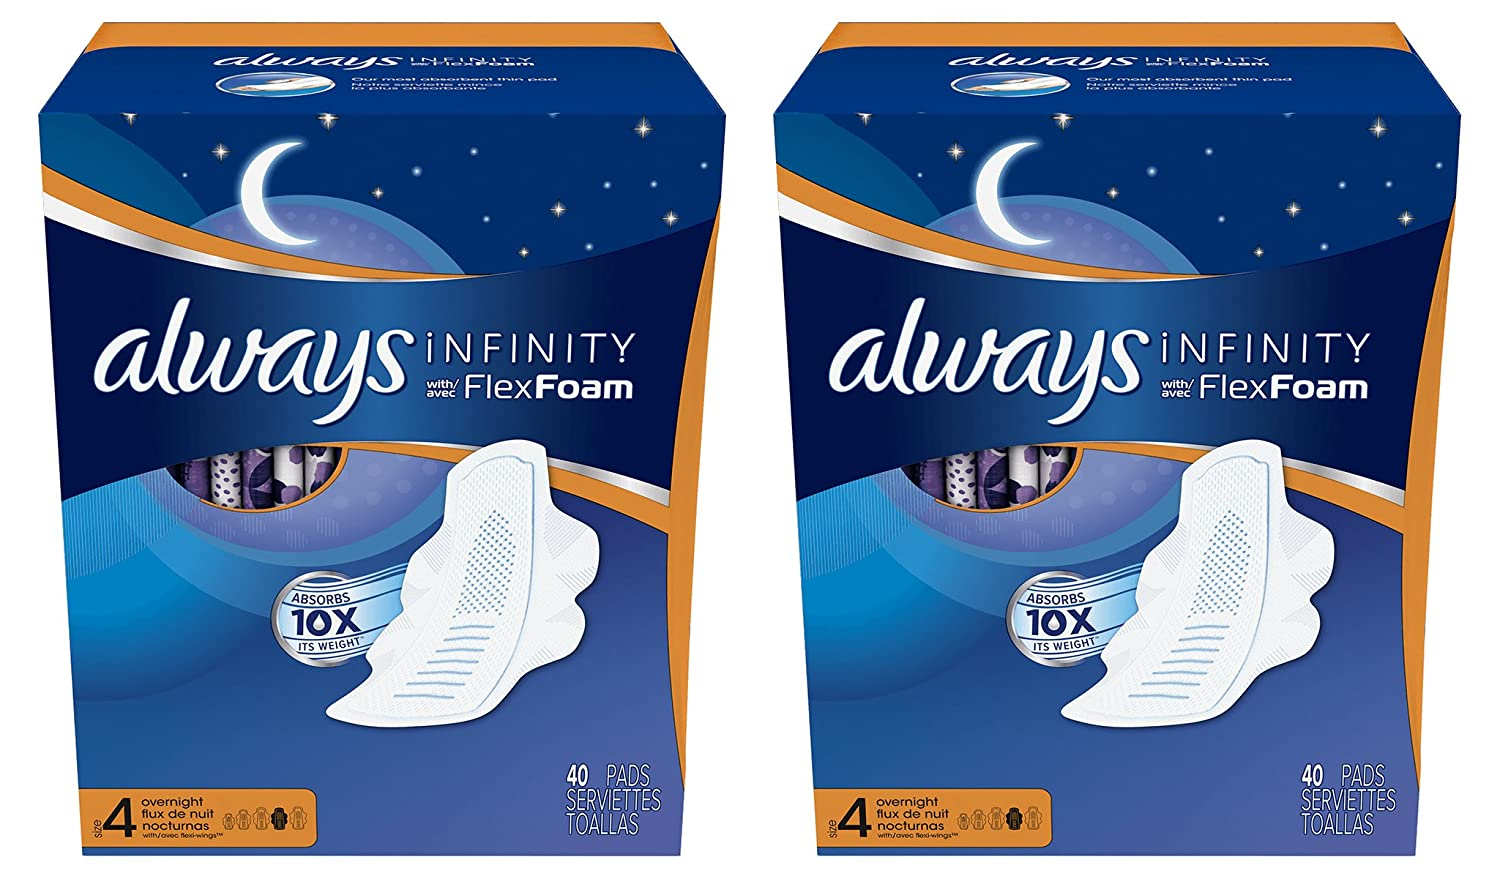 Always Infinity Overnight Size 4 Thin Night Time Pads with Flexi-Wings Flexible Wings and FlexFoam, Unscented, 40 Count. 2 Pack (Includes 80 Pads).